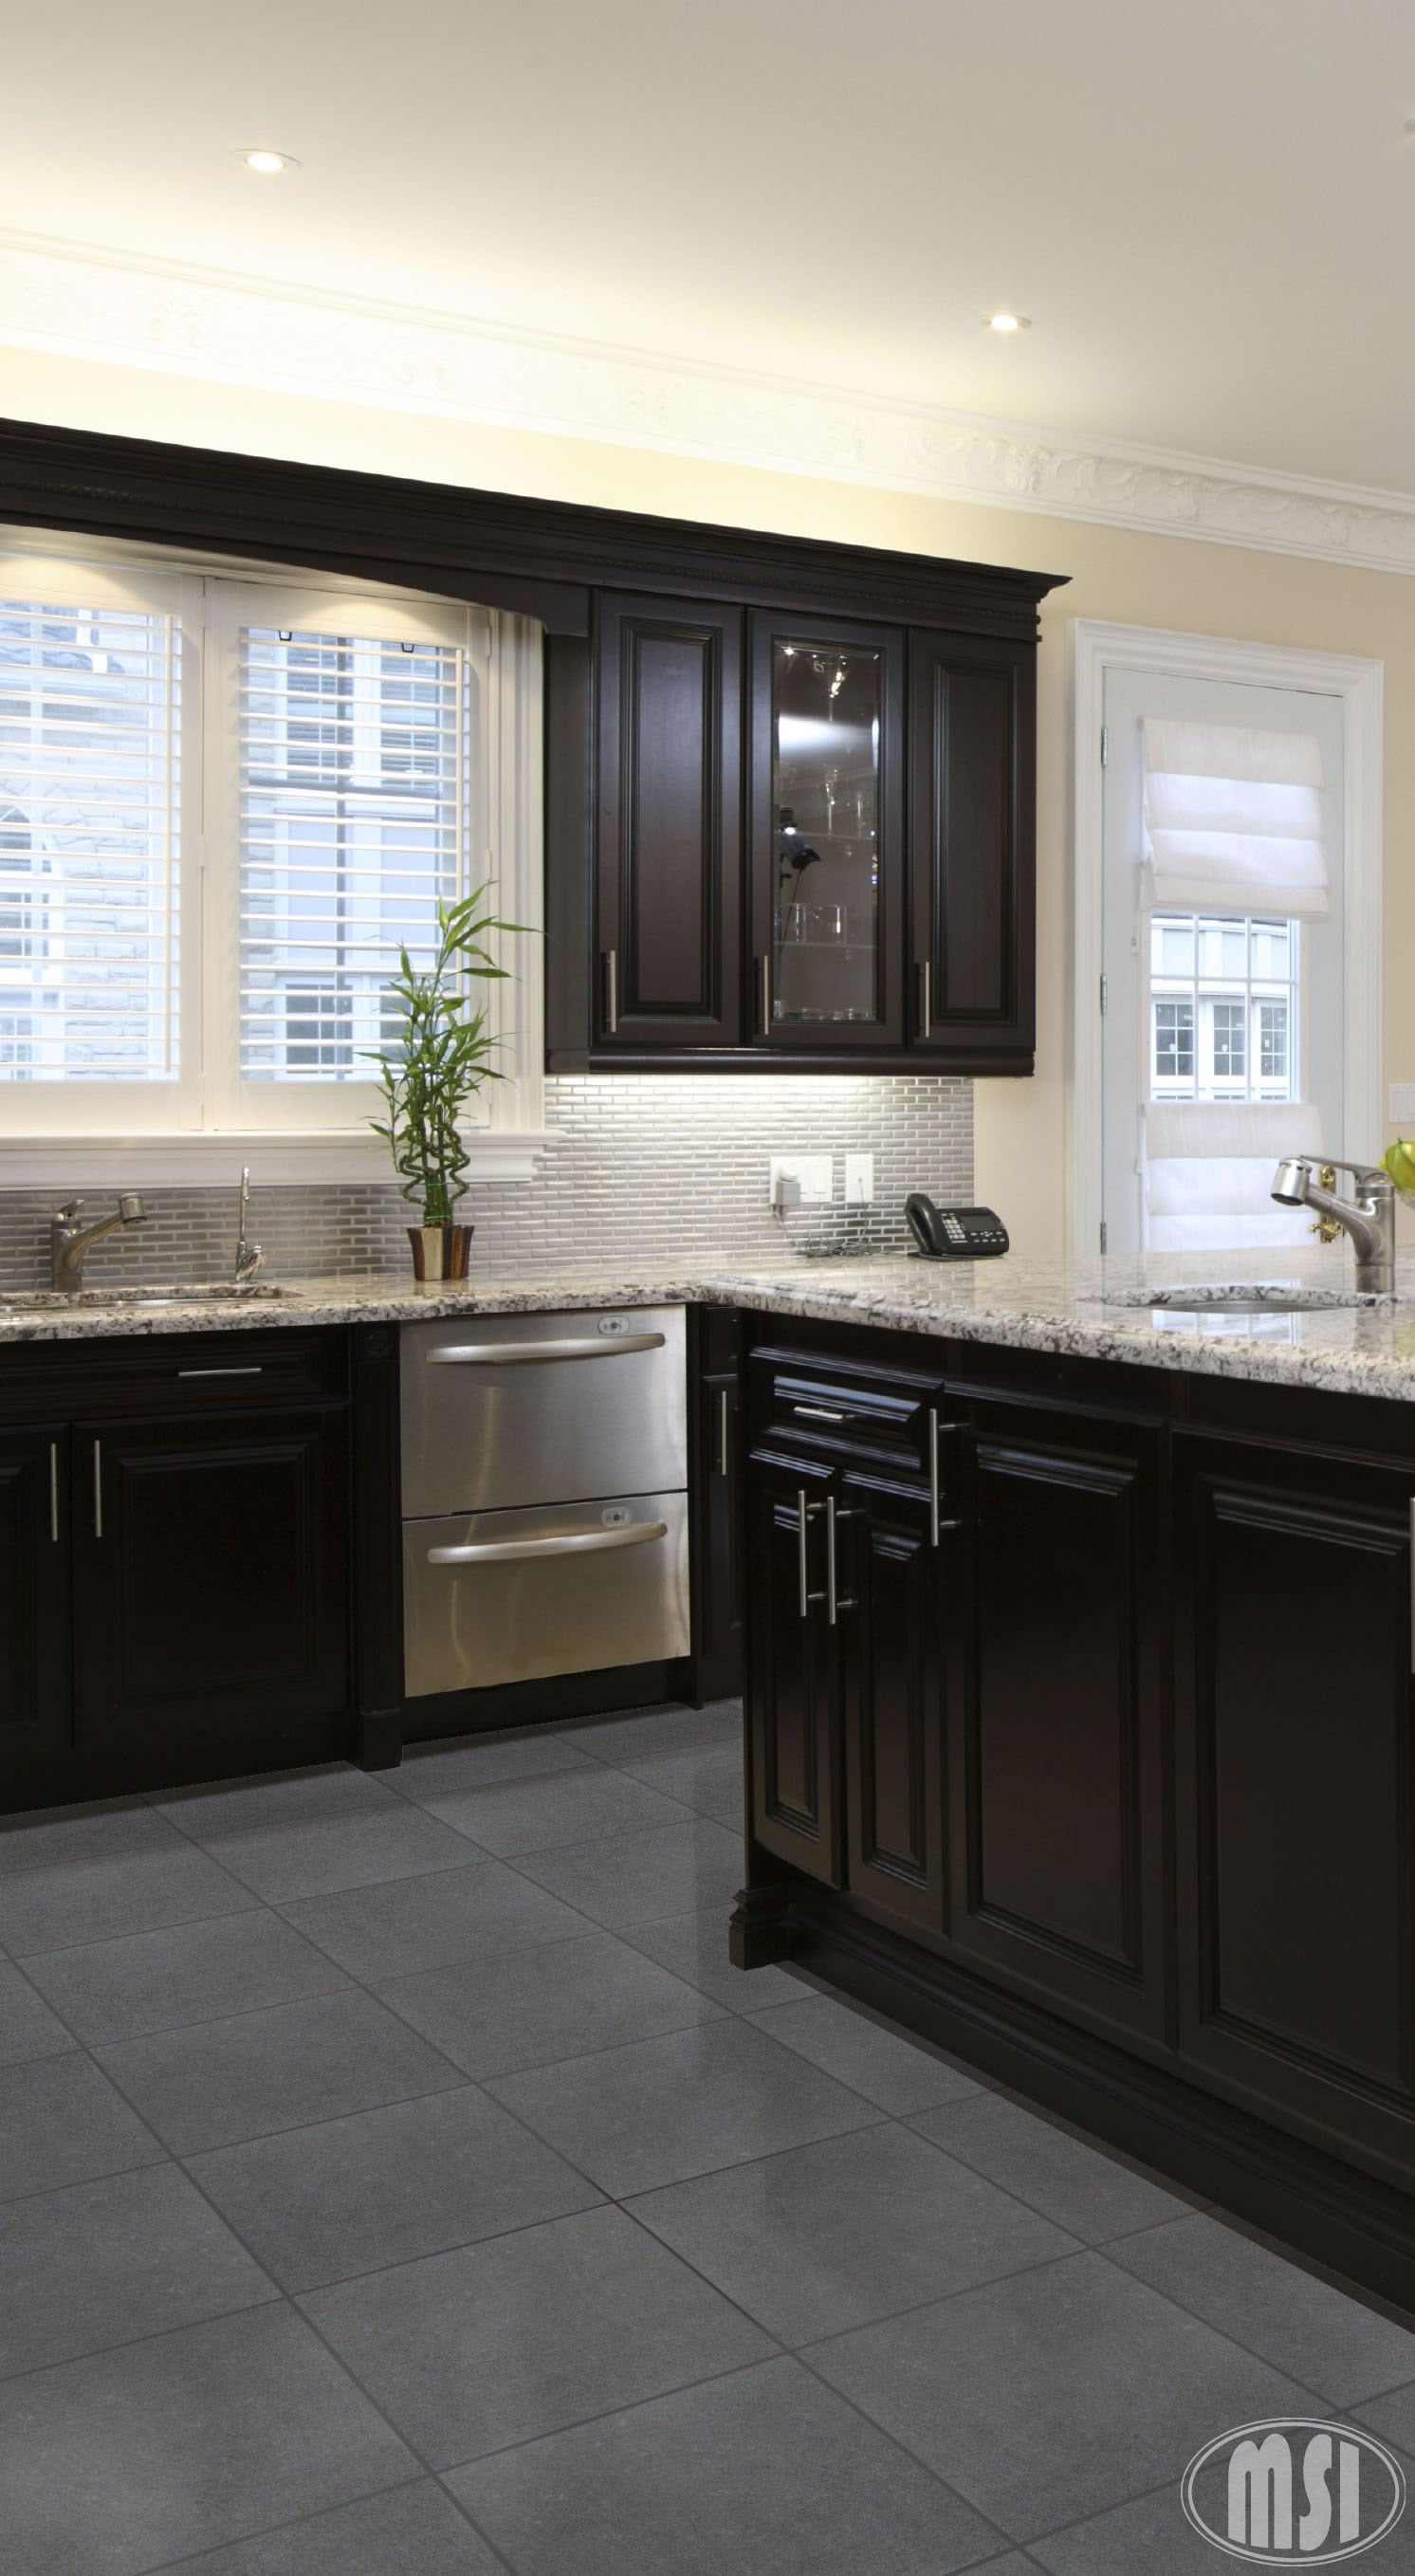 Moon White Granite With Dark Cabinets And Grey Floor Home Kitchens Kitchen Remodel Home Remodeling